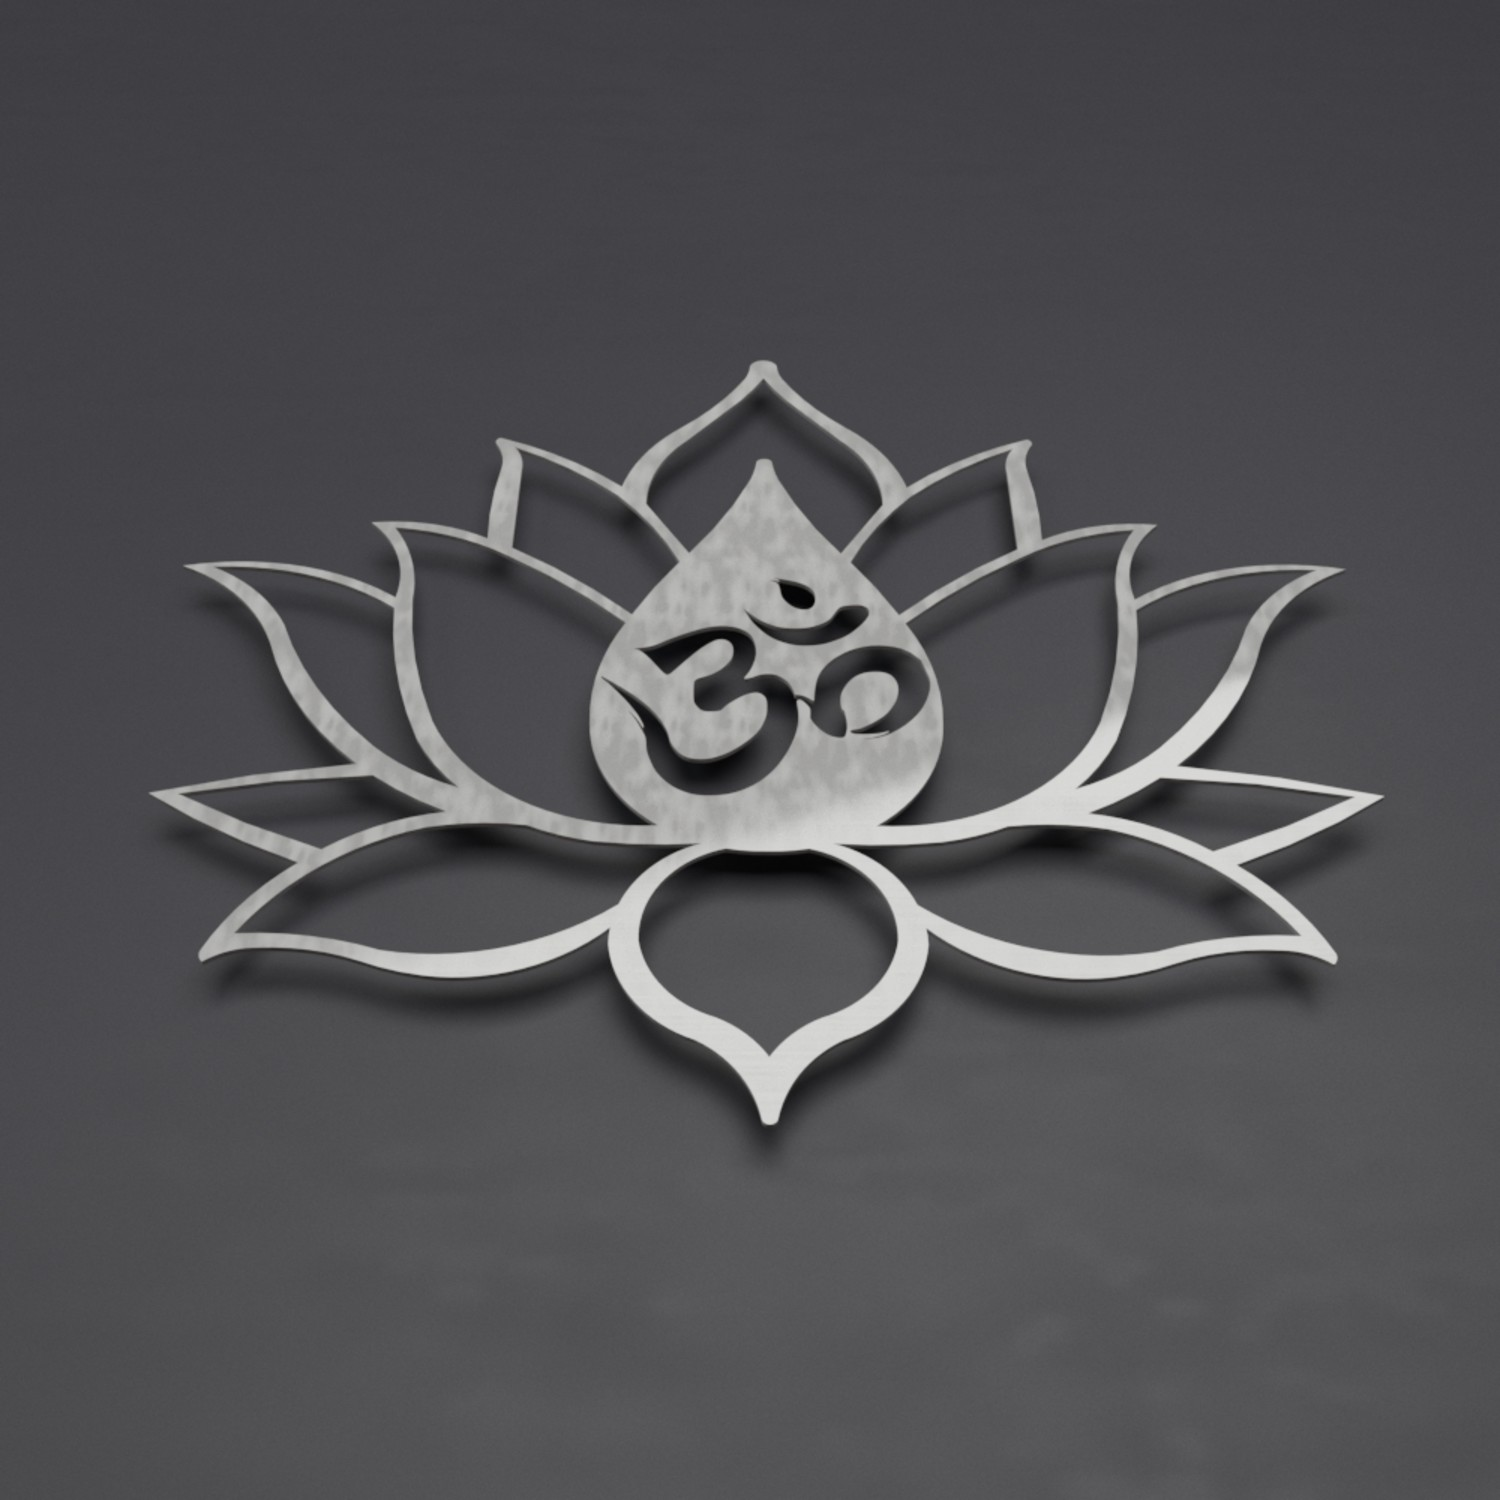 Xl om symbol lotus flower 3d metal wall art arte and metal touch xl om symbol lotus flower 3d metal wall art mightylinksfo